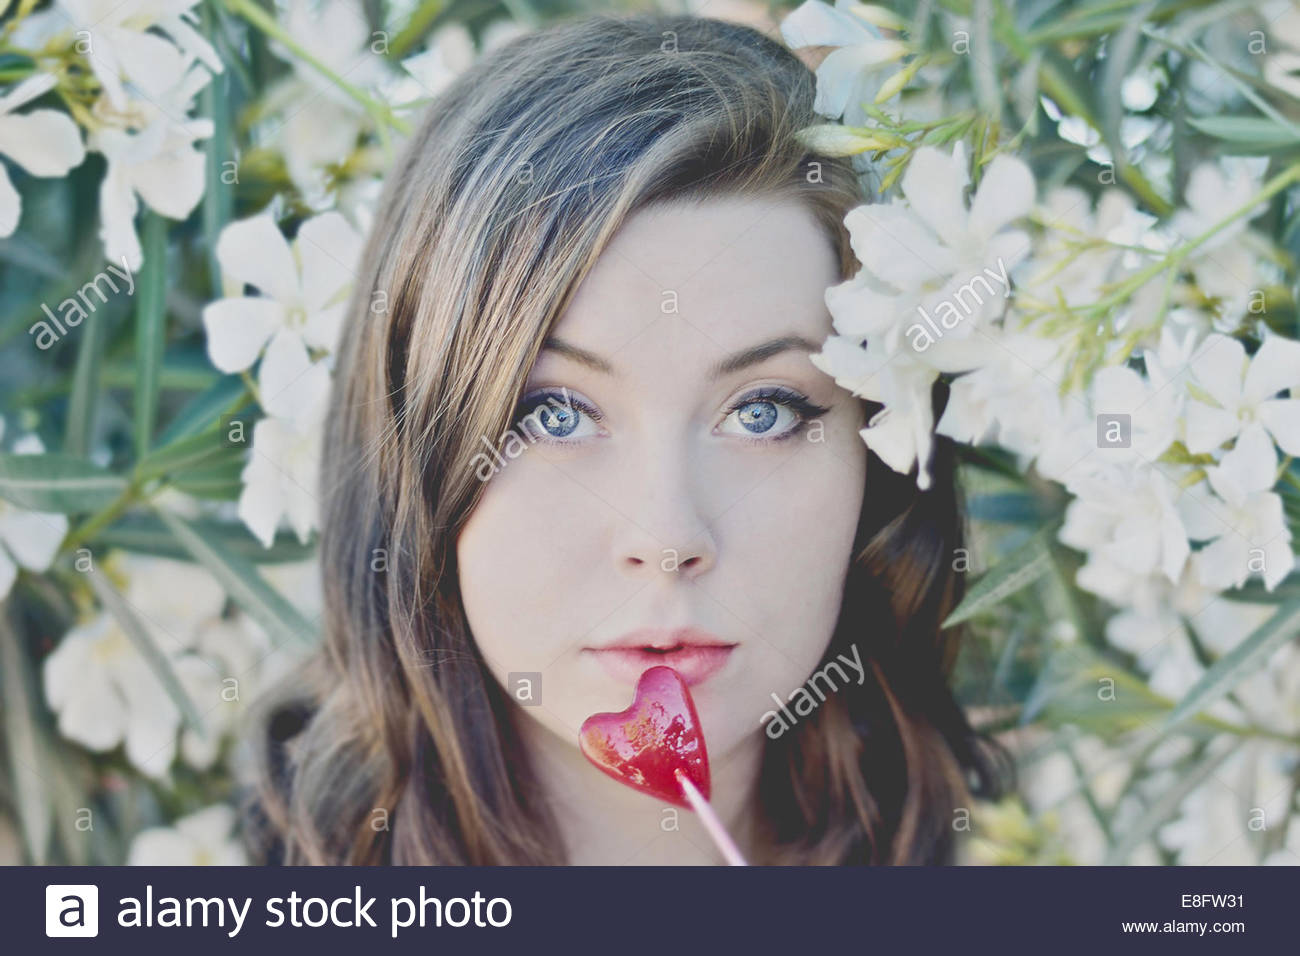 Portrait of woman with heart shaped lollypop and flowers in background - Stock Image